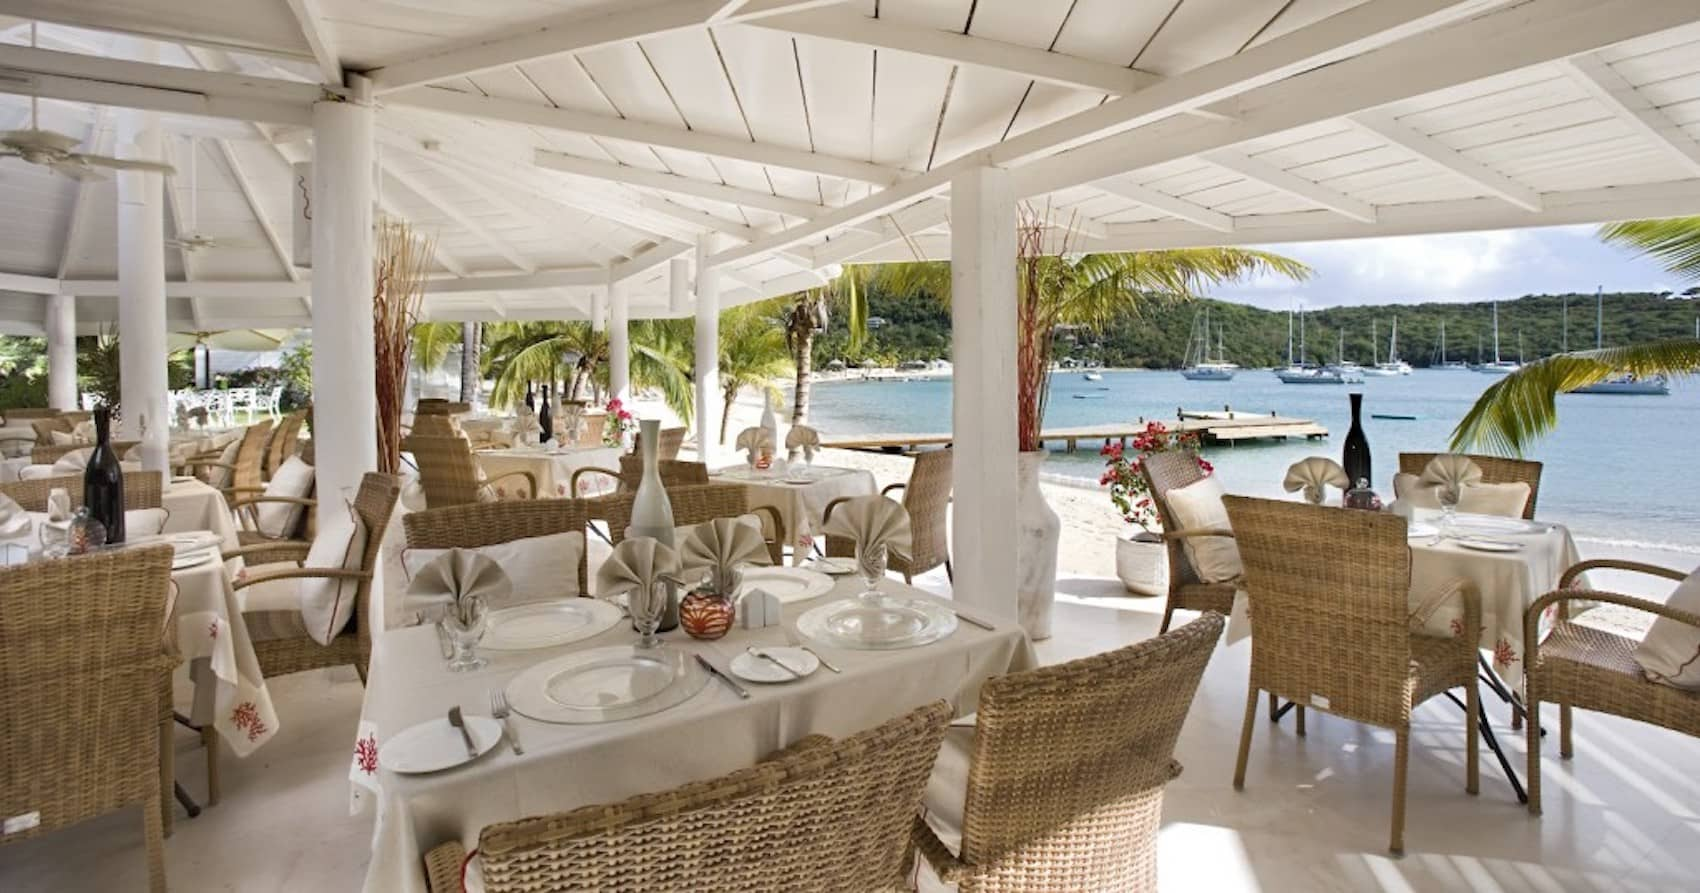 The inn at english harbour - Viaggio di nozze ai Caraibi